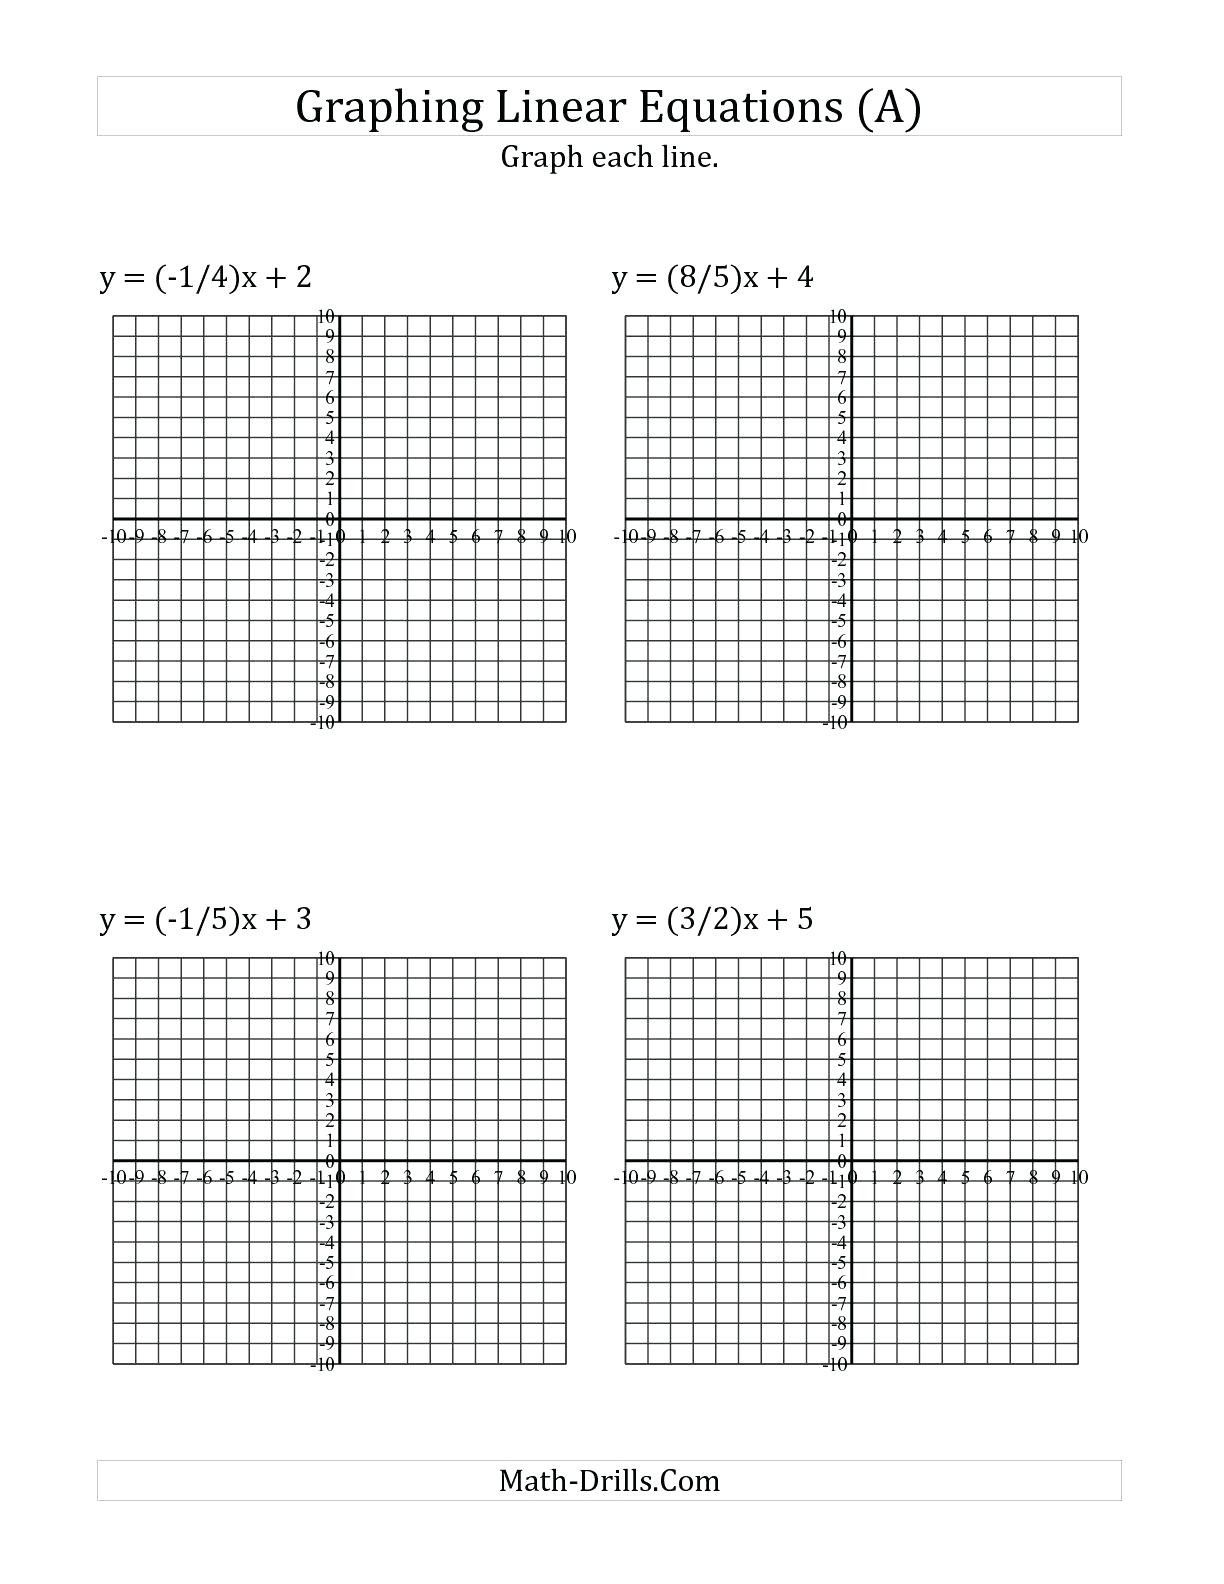 5 Free Math Worksheets First Grade 1 Addition Number Lines Line Math Unique In 2020 Graphing Linear Equations Linear Equations Graphing Linear Inequalities